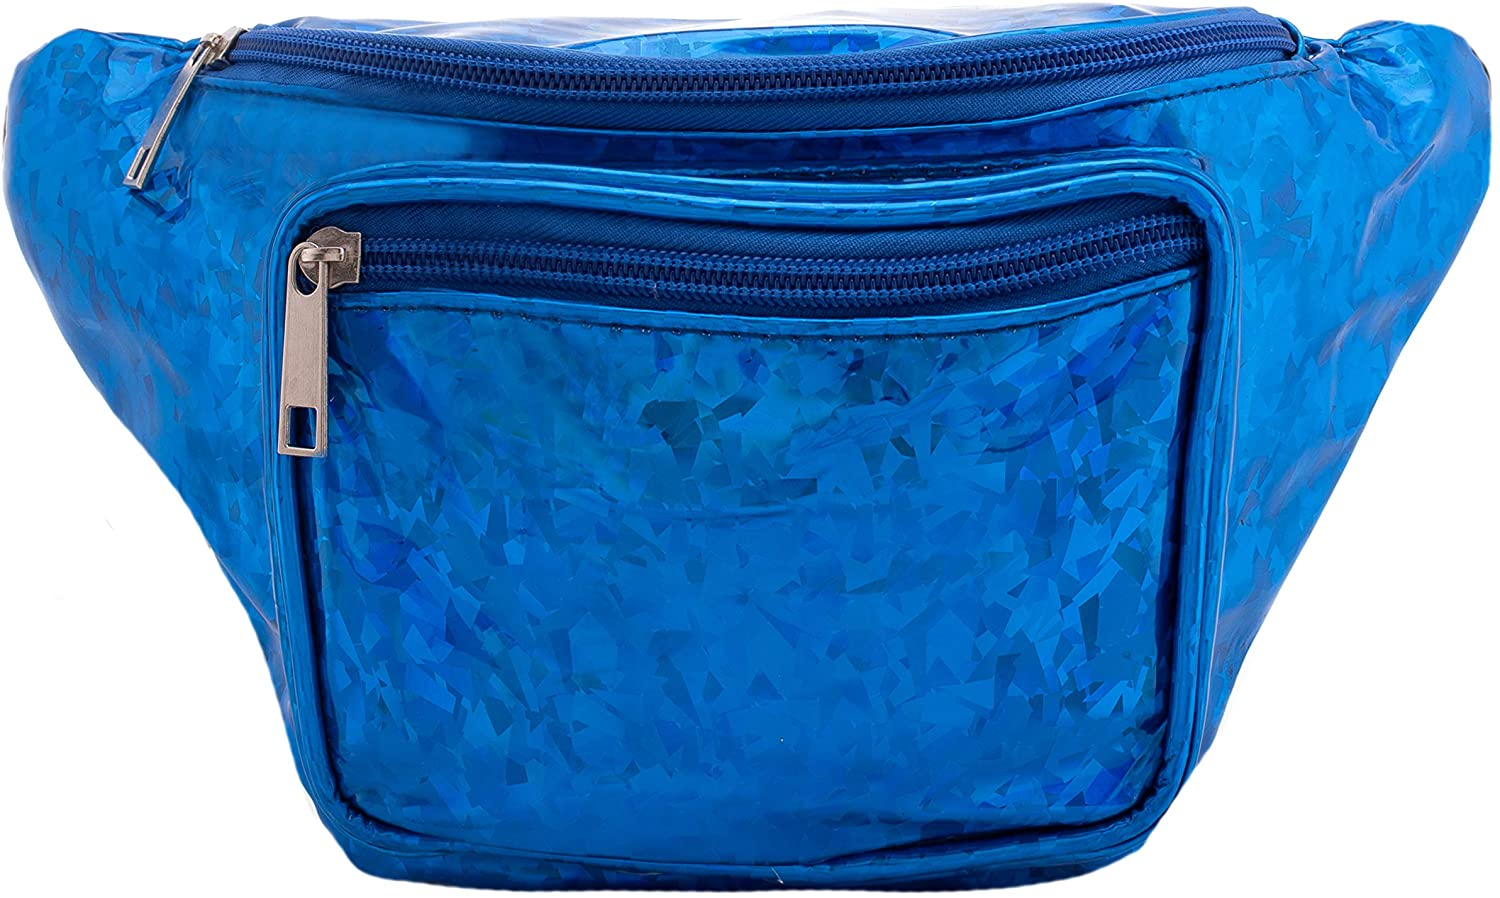 Holographic Fanny Waist Pack Bag - Holographic Confetti - Blue